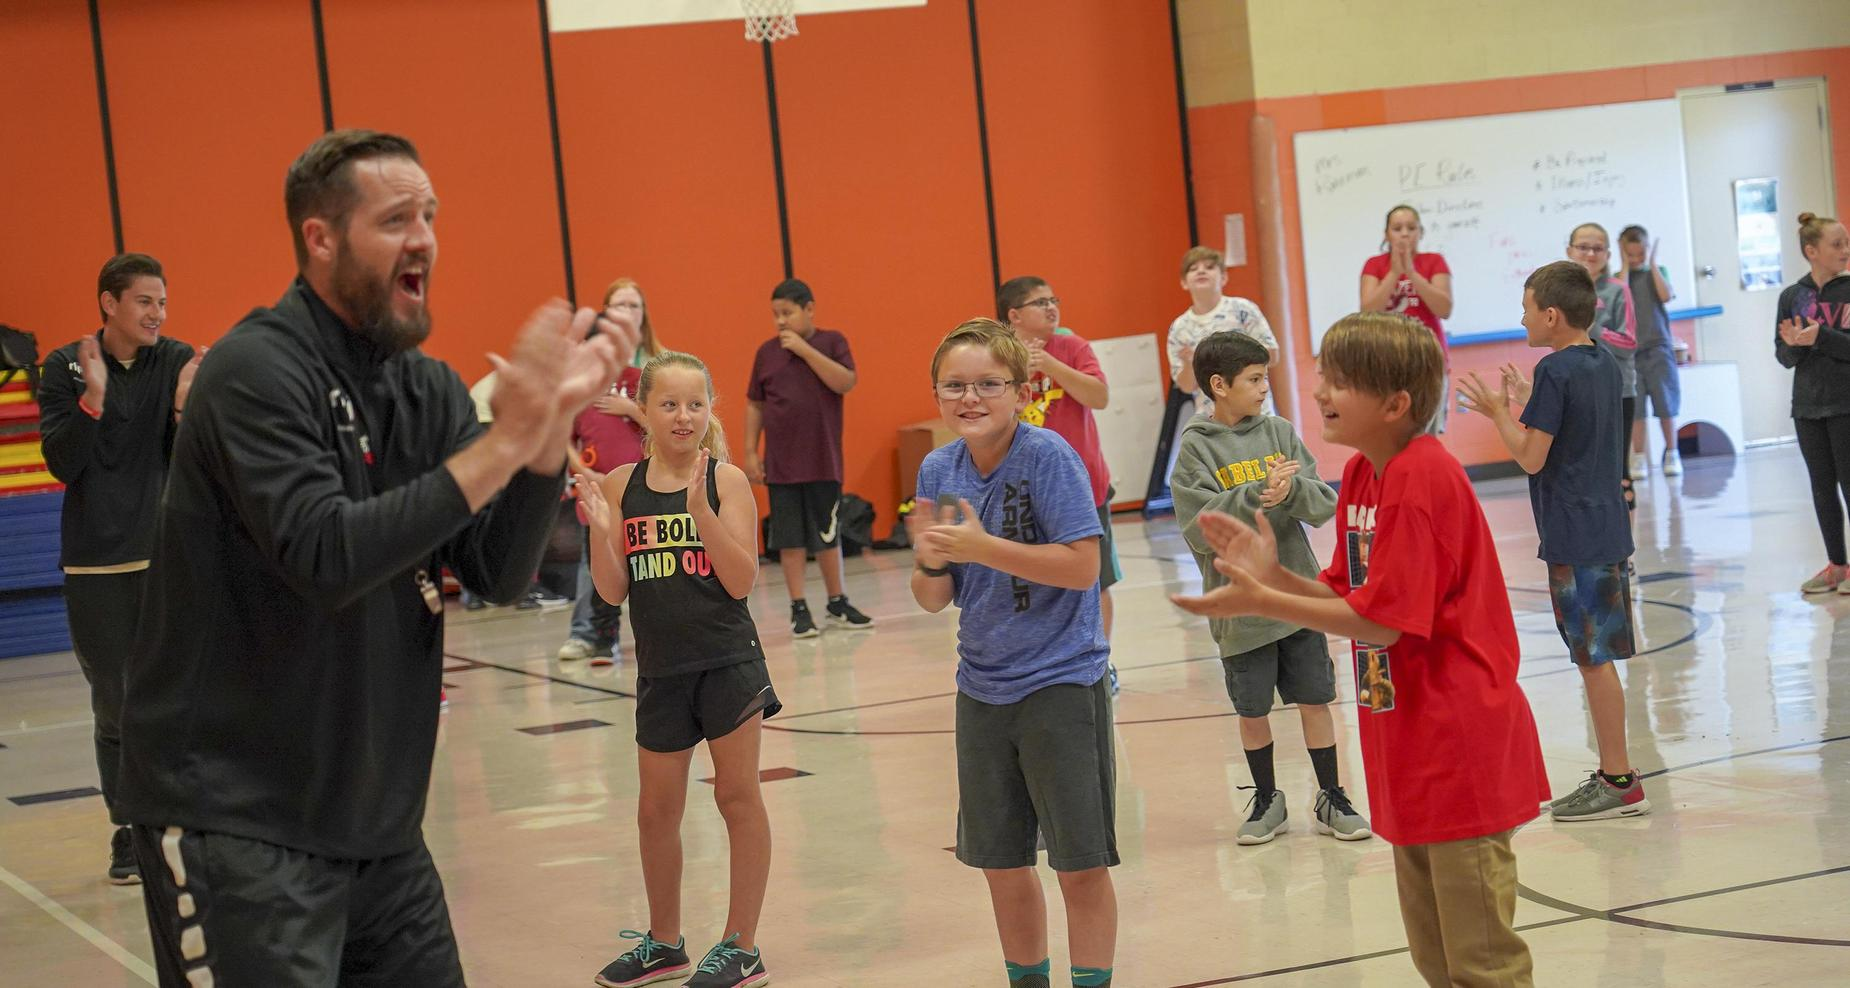 Students clapping while in PE class.